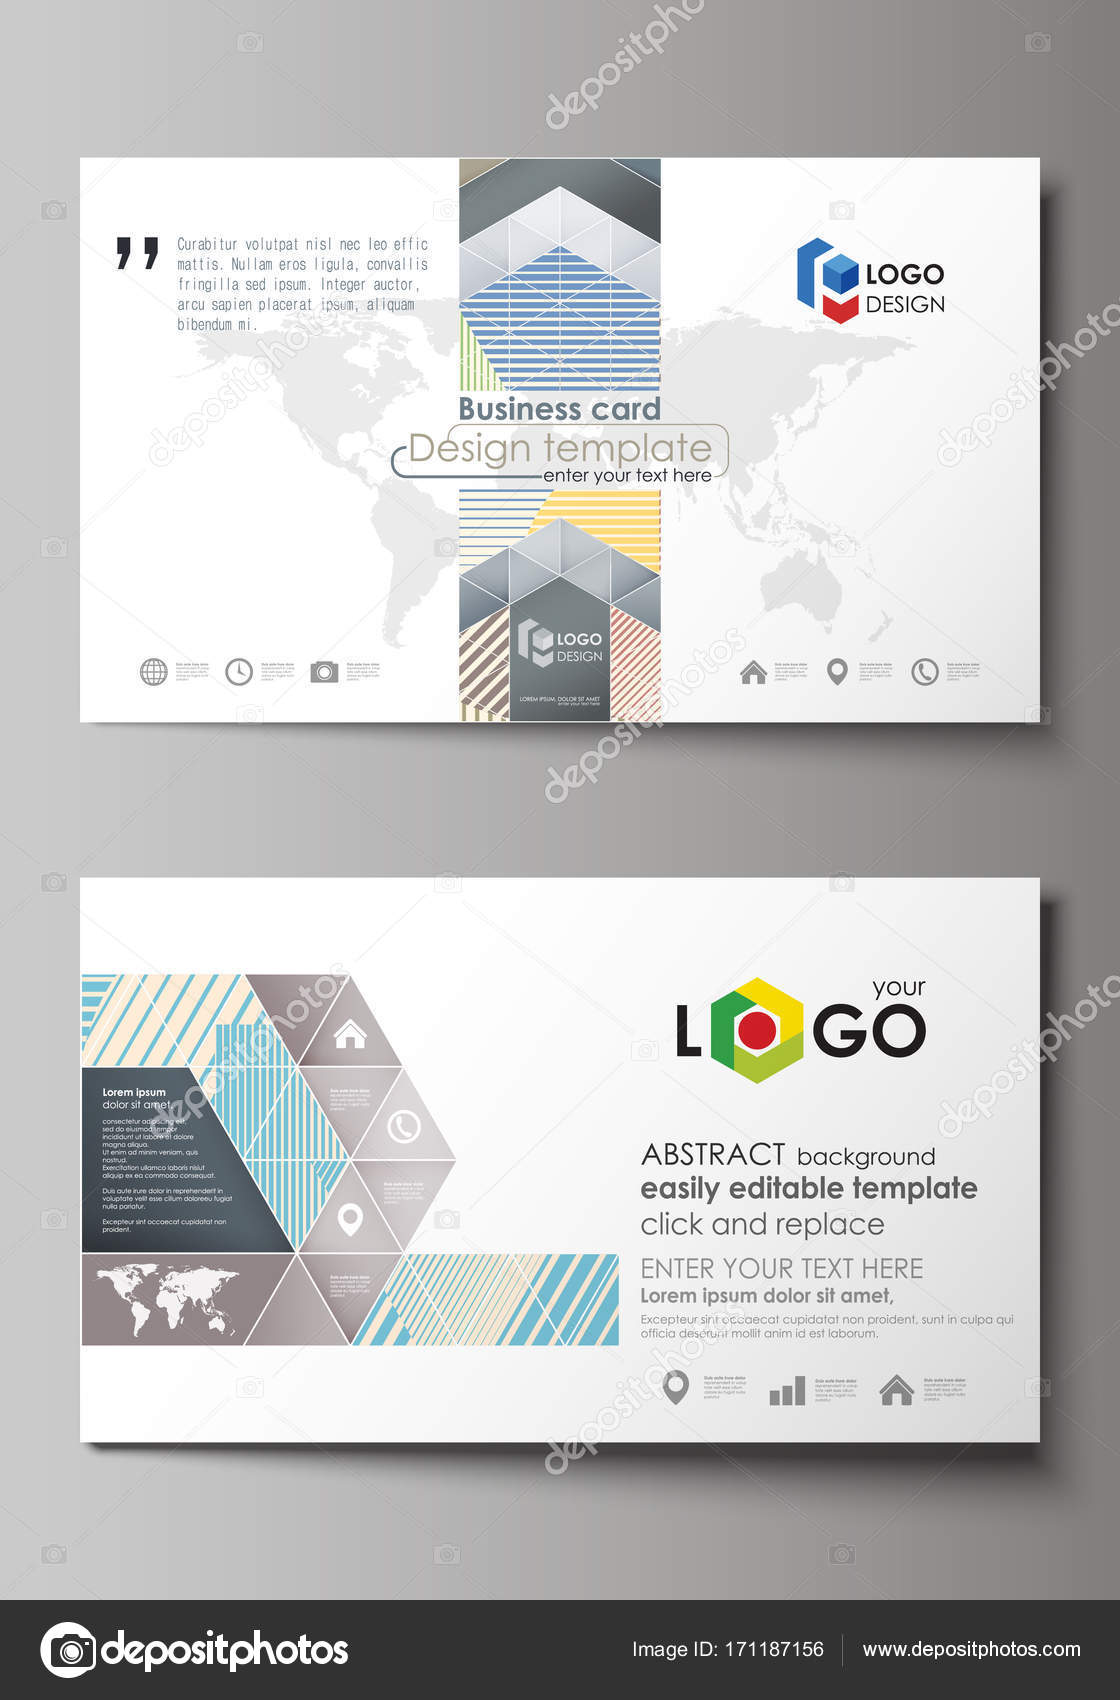 Business card templates easy editable layout abstract vector business card templates easy editable layout abstract vector design template minimalistic design with lines geometric shapes forming beautiful cheaphphosting Image collections